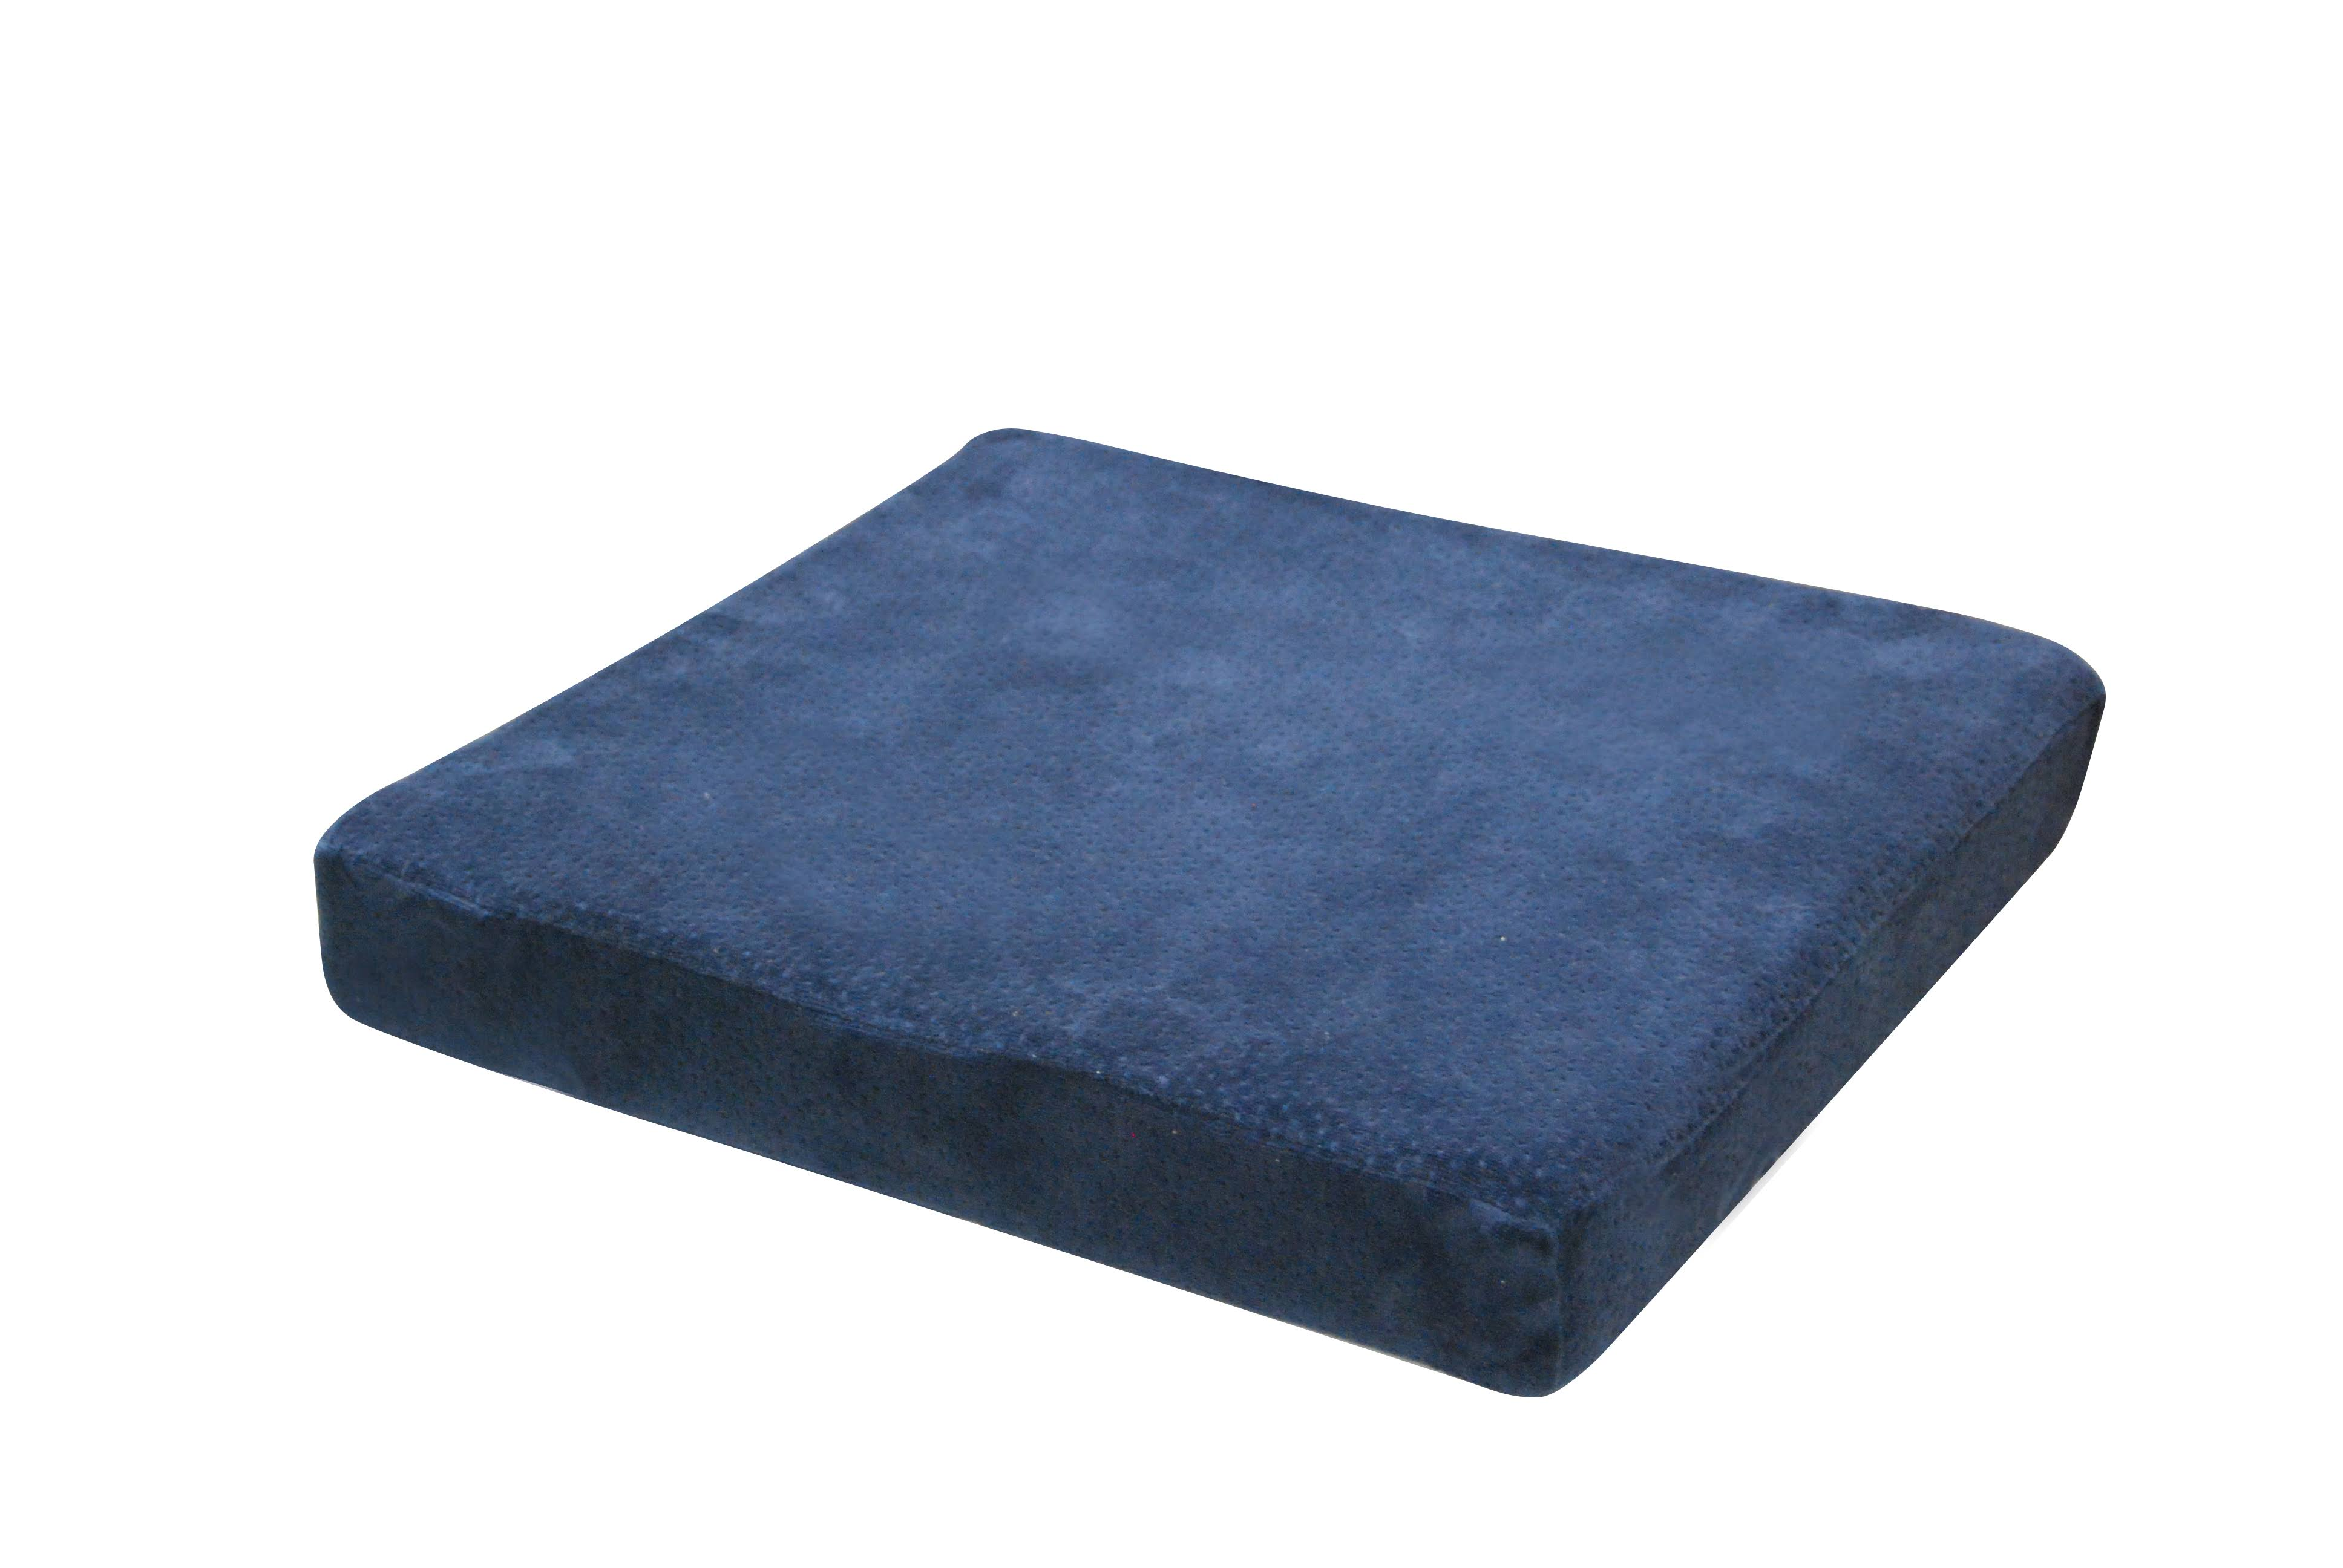 Drive Medical Foam Cushion - Navy Blue, 3''